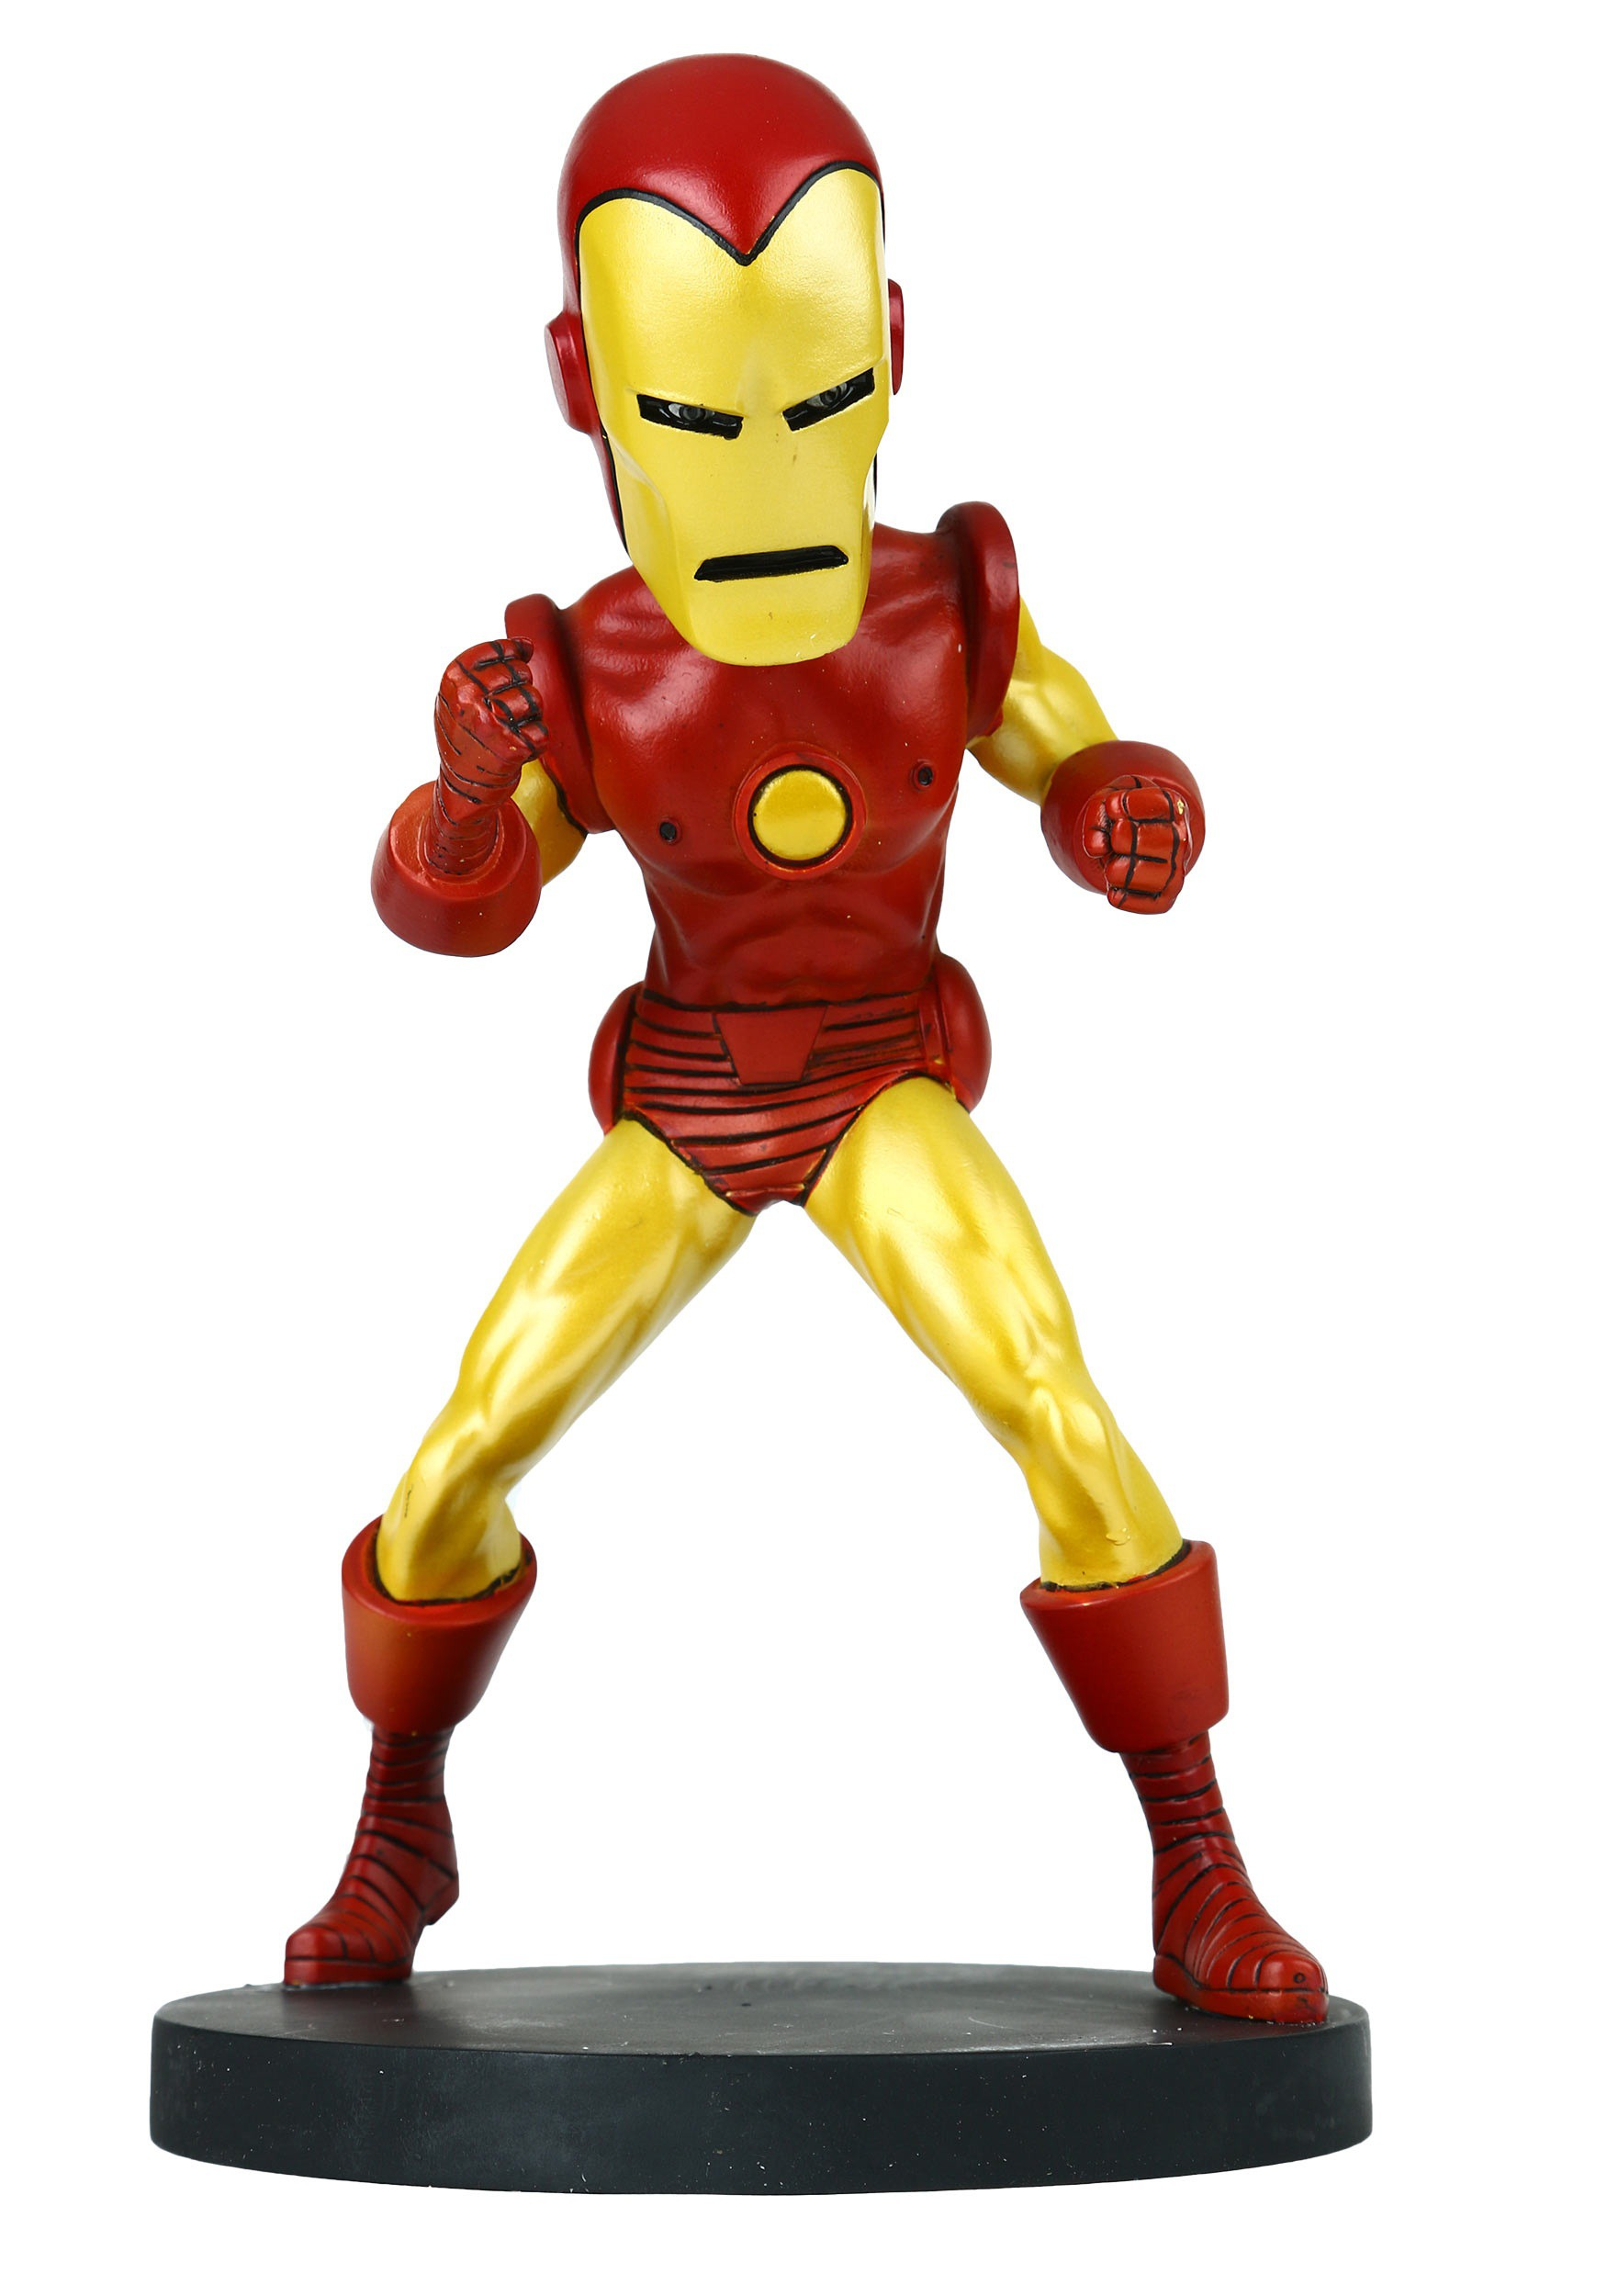 Details about Neca - Marvel - Classic Iron Man Extreme Headknocker